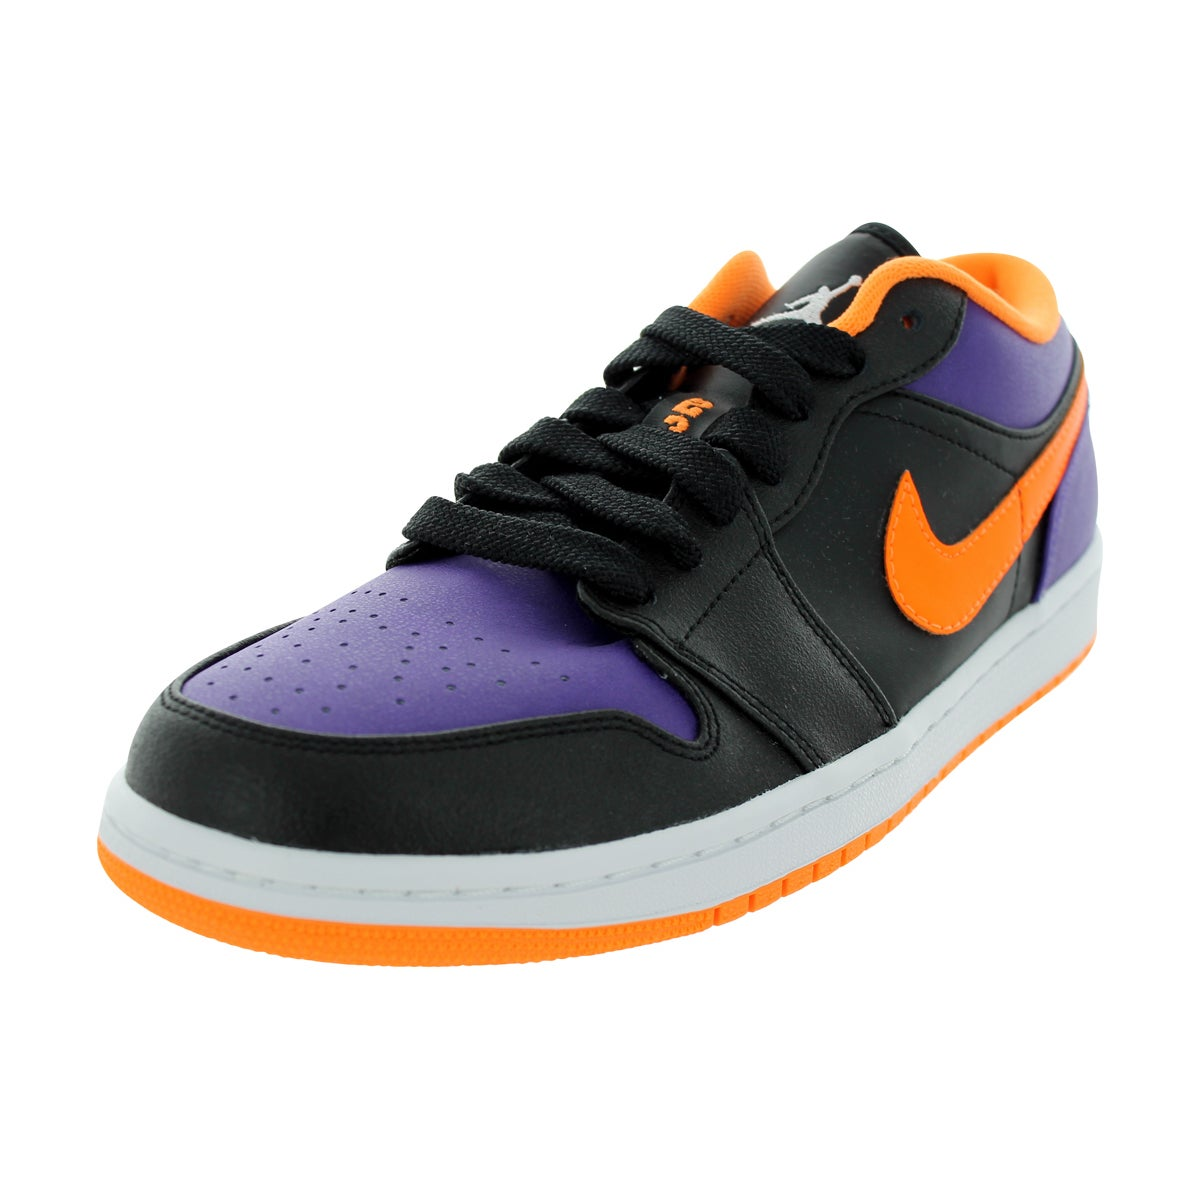 Shop Nike Men s Air Jordan 1 Low Black Brght Ctrsurple White Basketball  Shoe - Free Shipping Today - Overstock - 12318740 8f9b5c6f4